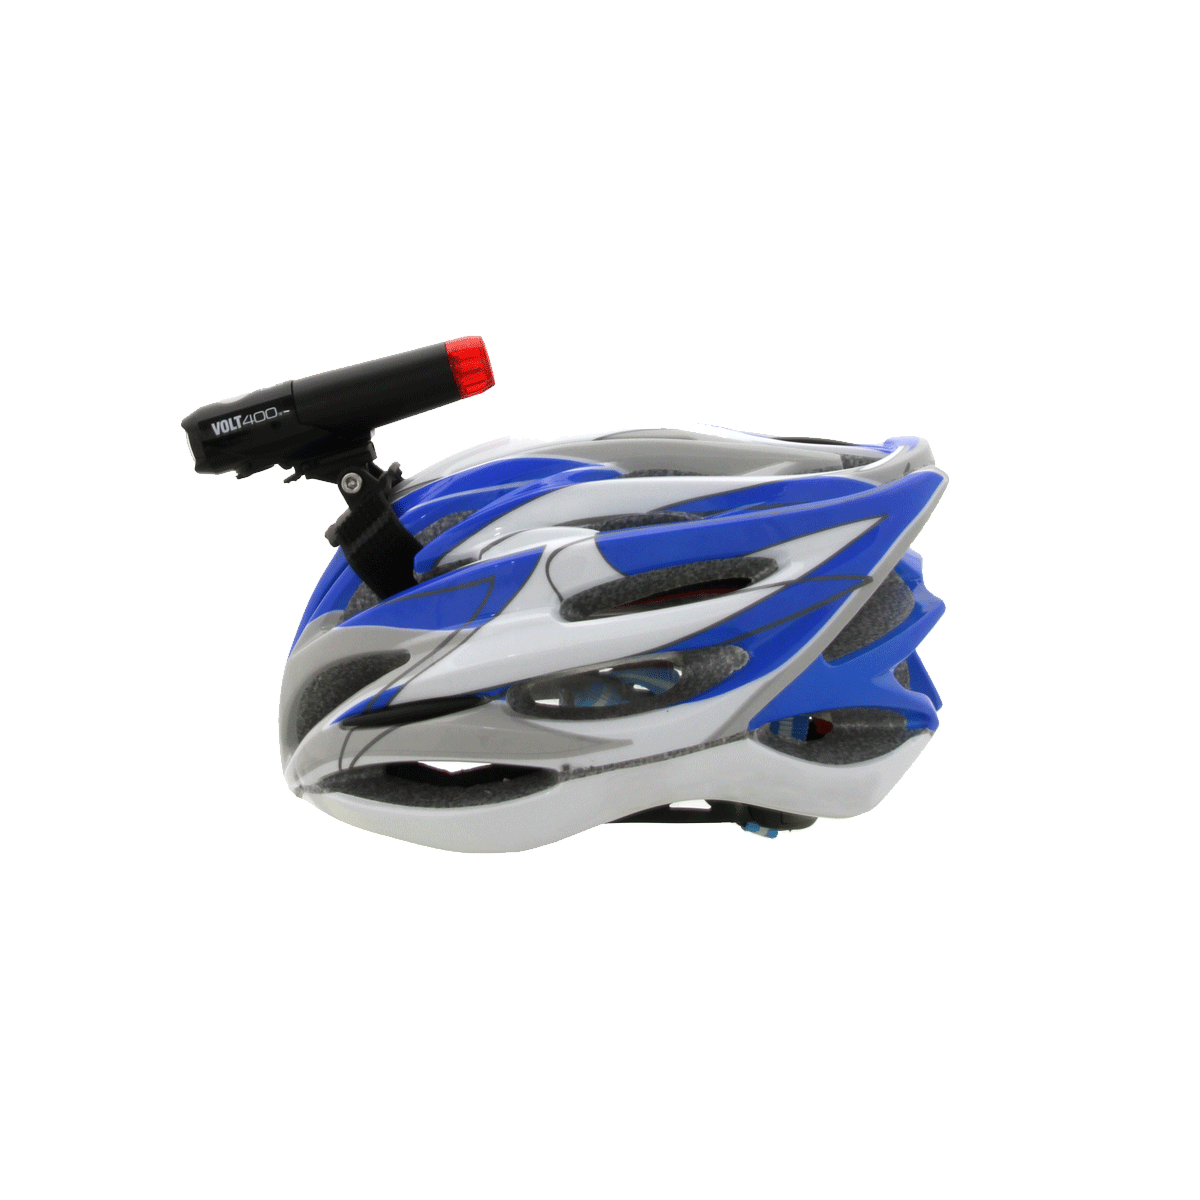 cateye-volt-400-duplex-front-rear-rutland-cycling